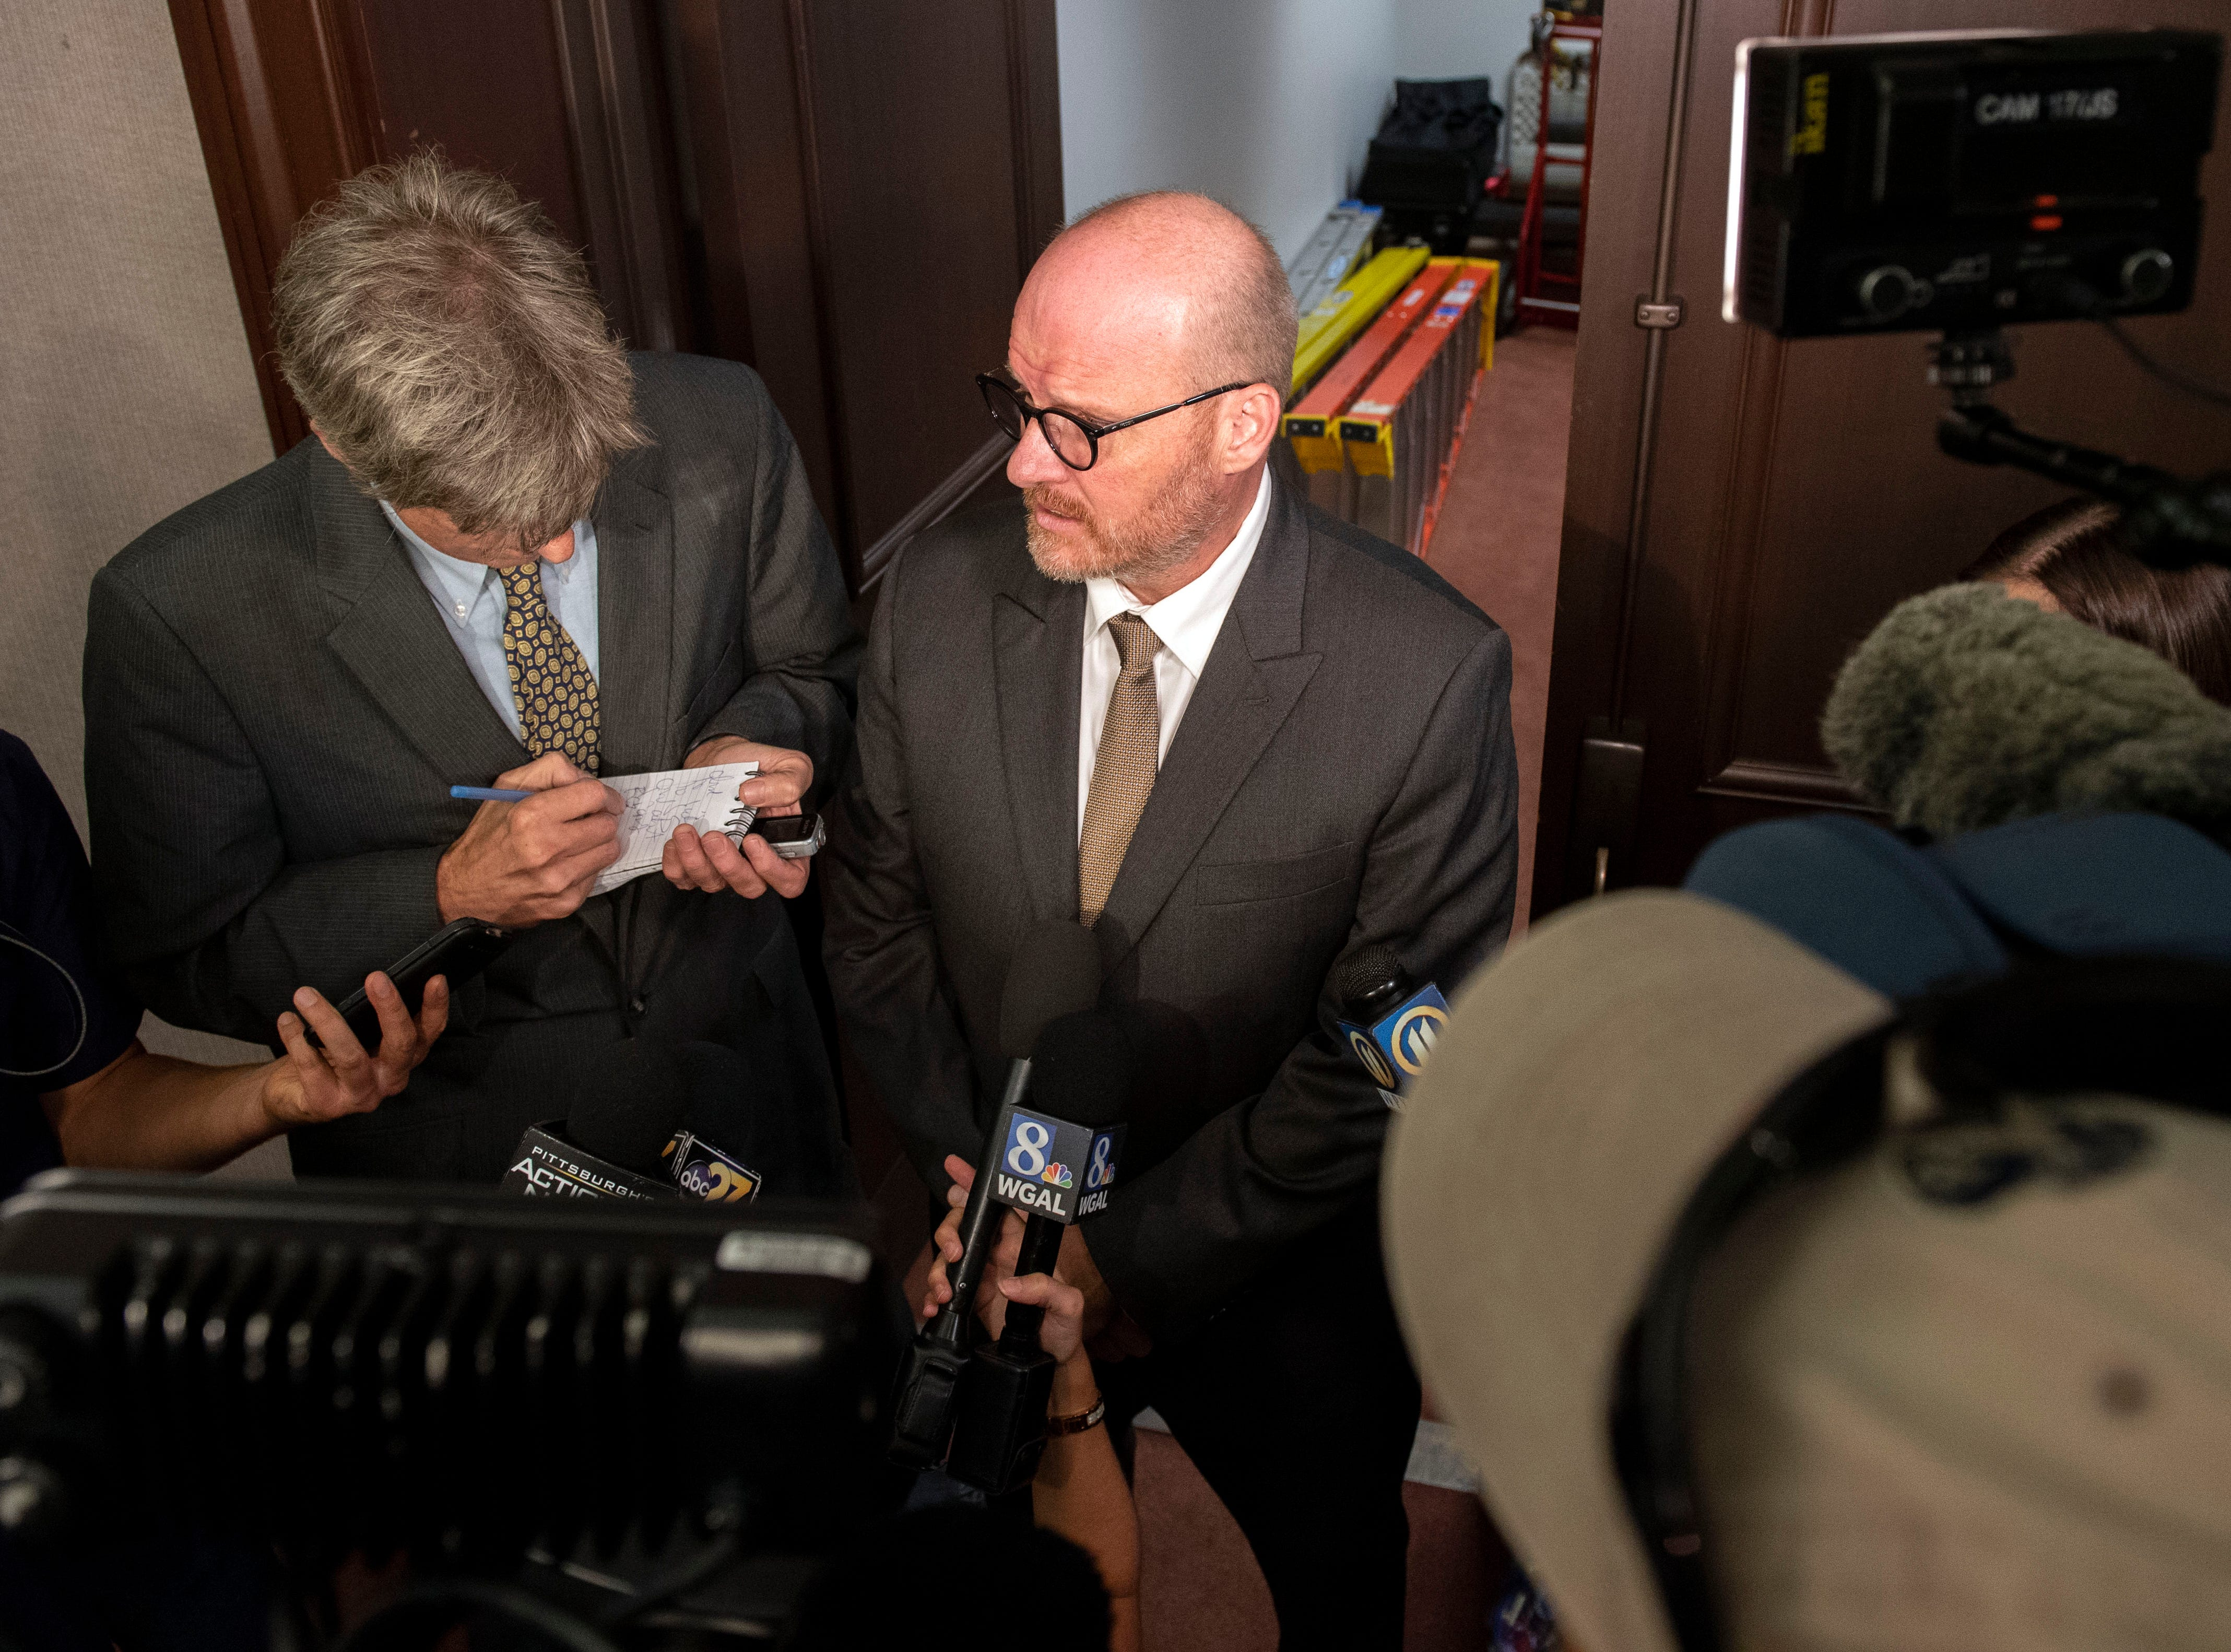 'I have closure,' said Shaun Daugherty, a survivor of sexual abuse by a priest, speaks to media after Attorney General Josh Shapiro outlined the findings of the grand jury investigation into six catholic diocese in Pennsylvania, Tuesday, August 14, 2018. The grand jury's report detailed child sexual abuse and coverup by more than 300 clergy.